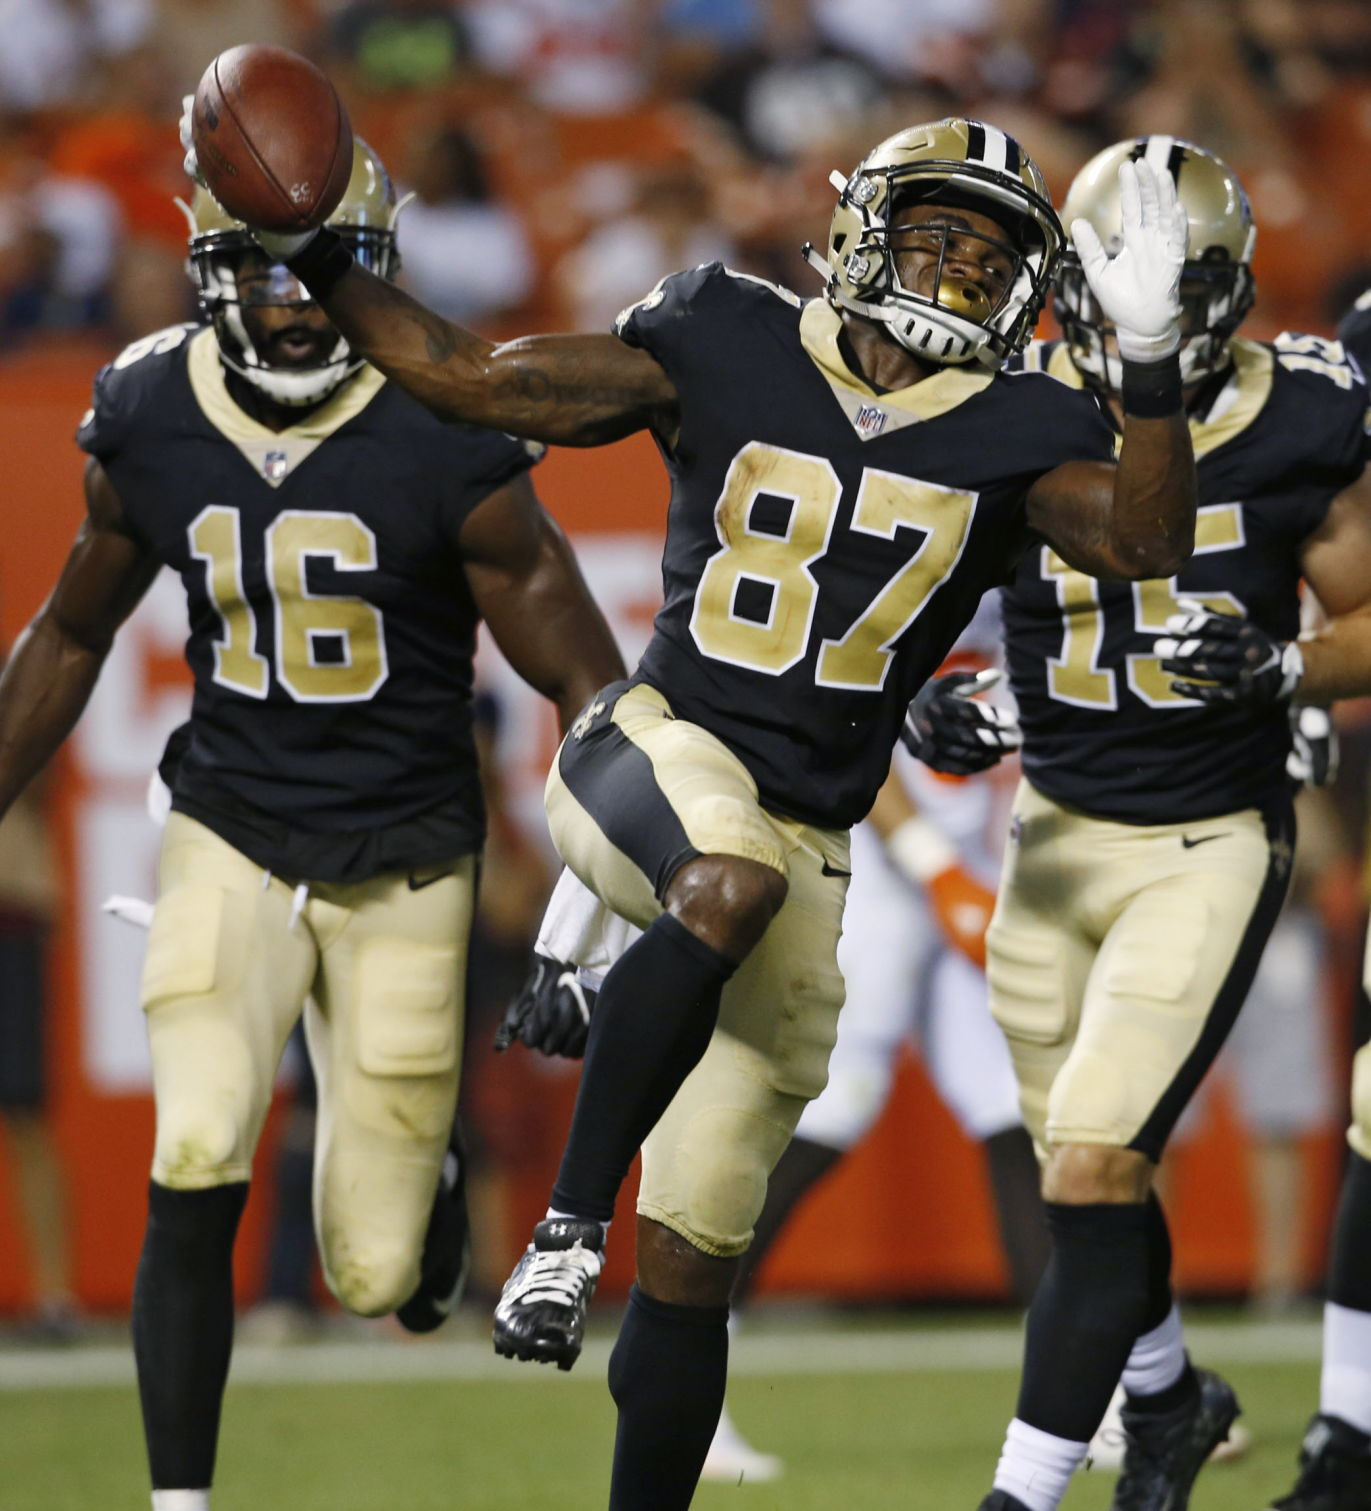 Cleveland Browns 7, New Orleans Saints 6